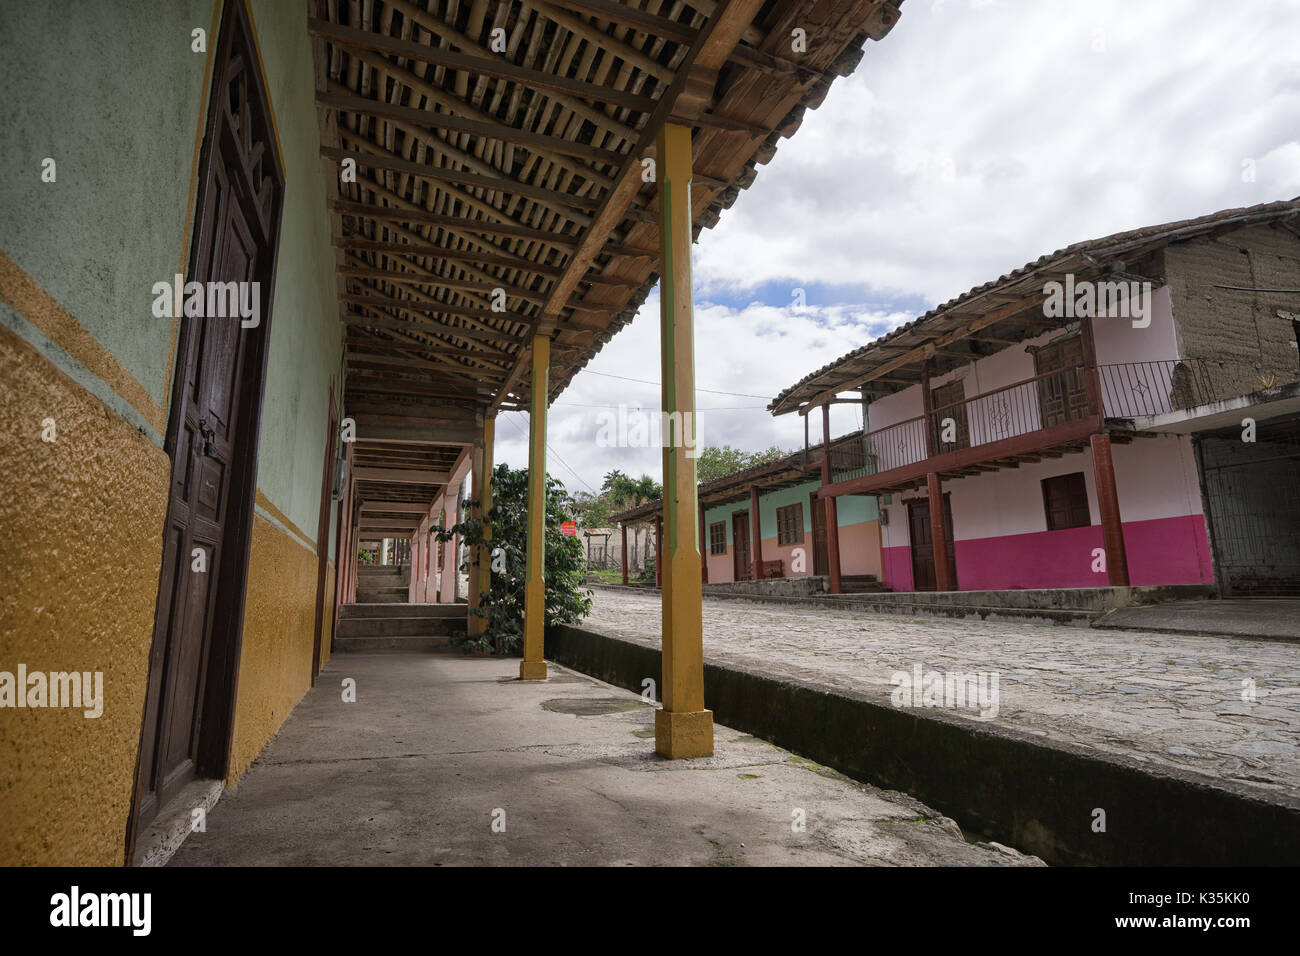 March 12, 2017 Vilcabamba, Ecuador: colonial architecture in the remote indigenous town known for longevity - Stock Image